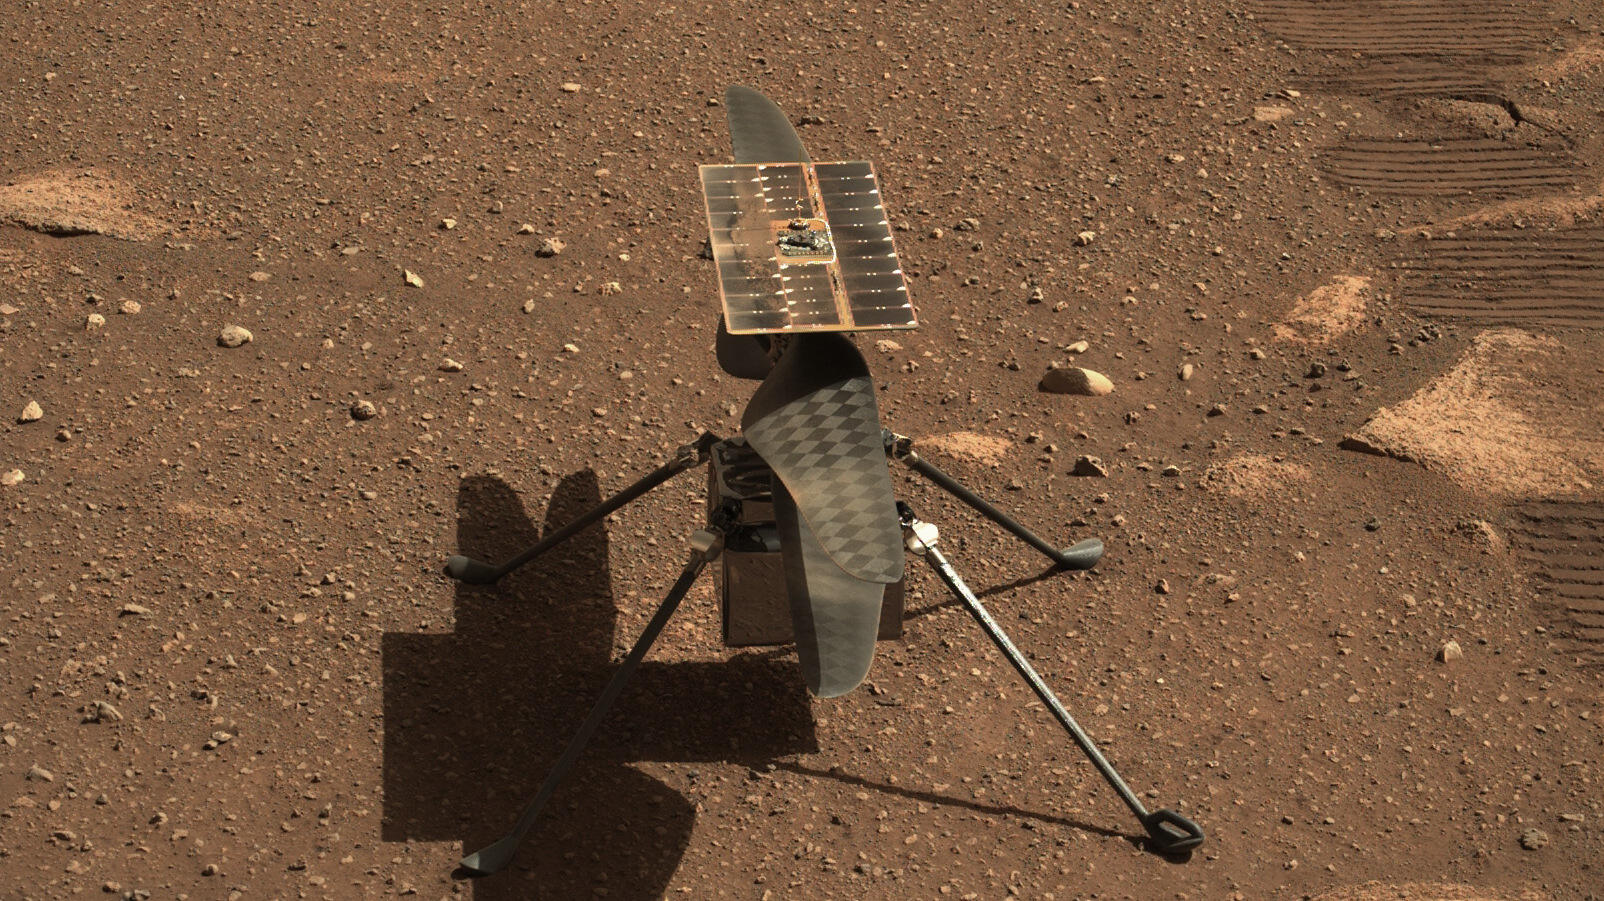 Flying a helicopter on Mars is getting 'harder and harder,' NASA says